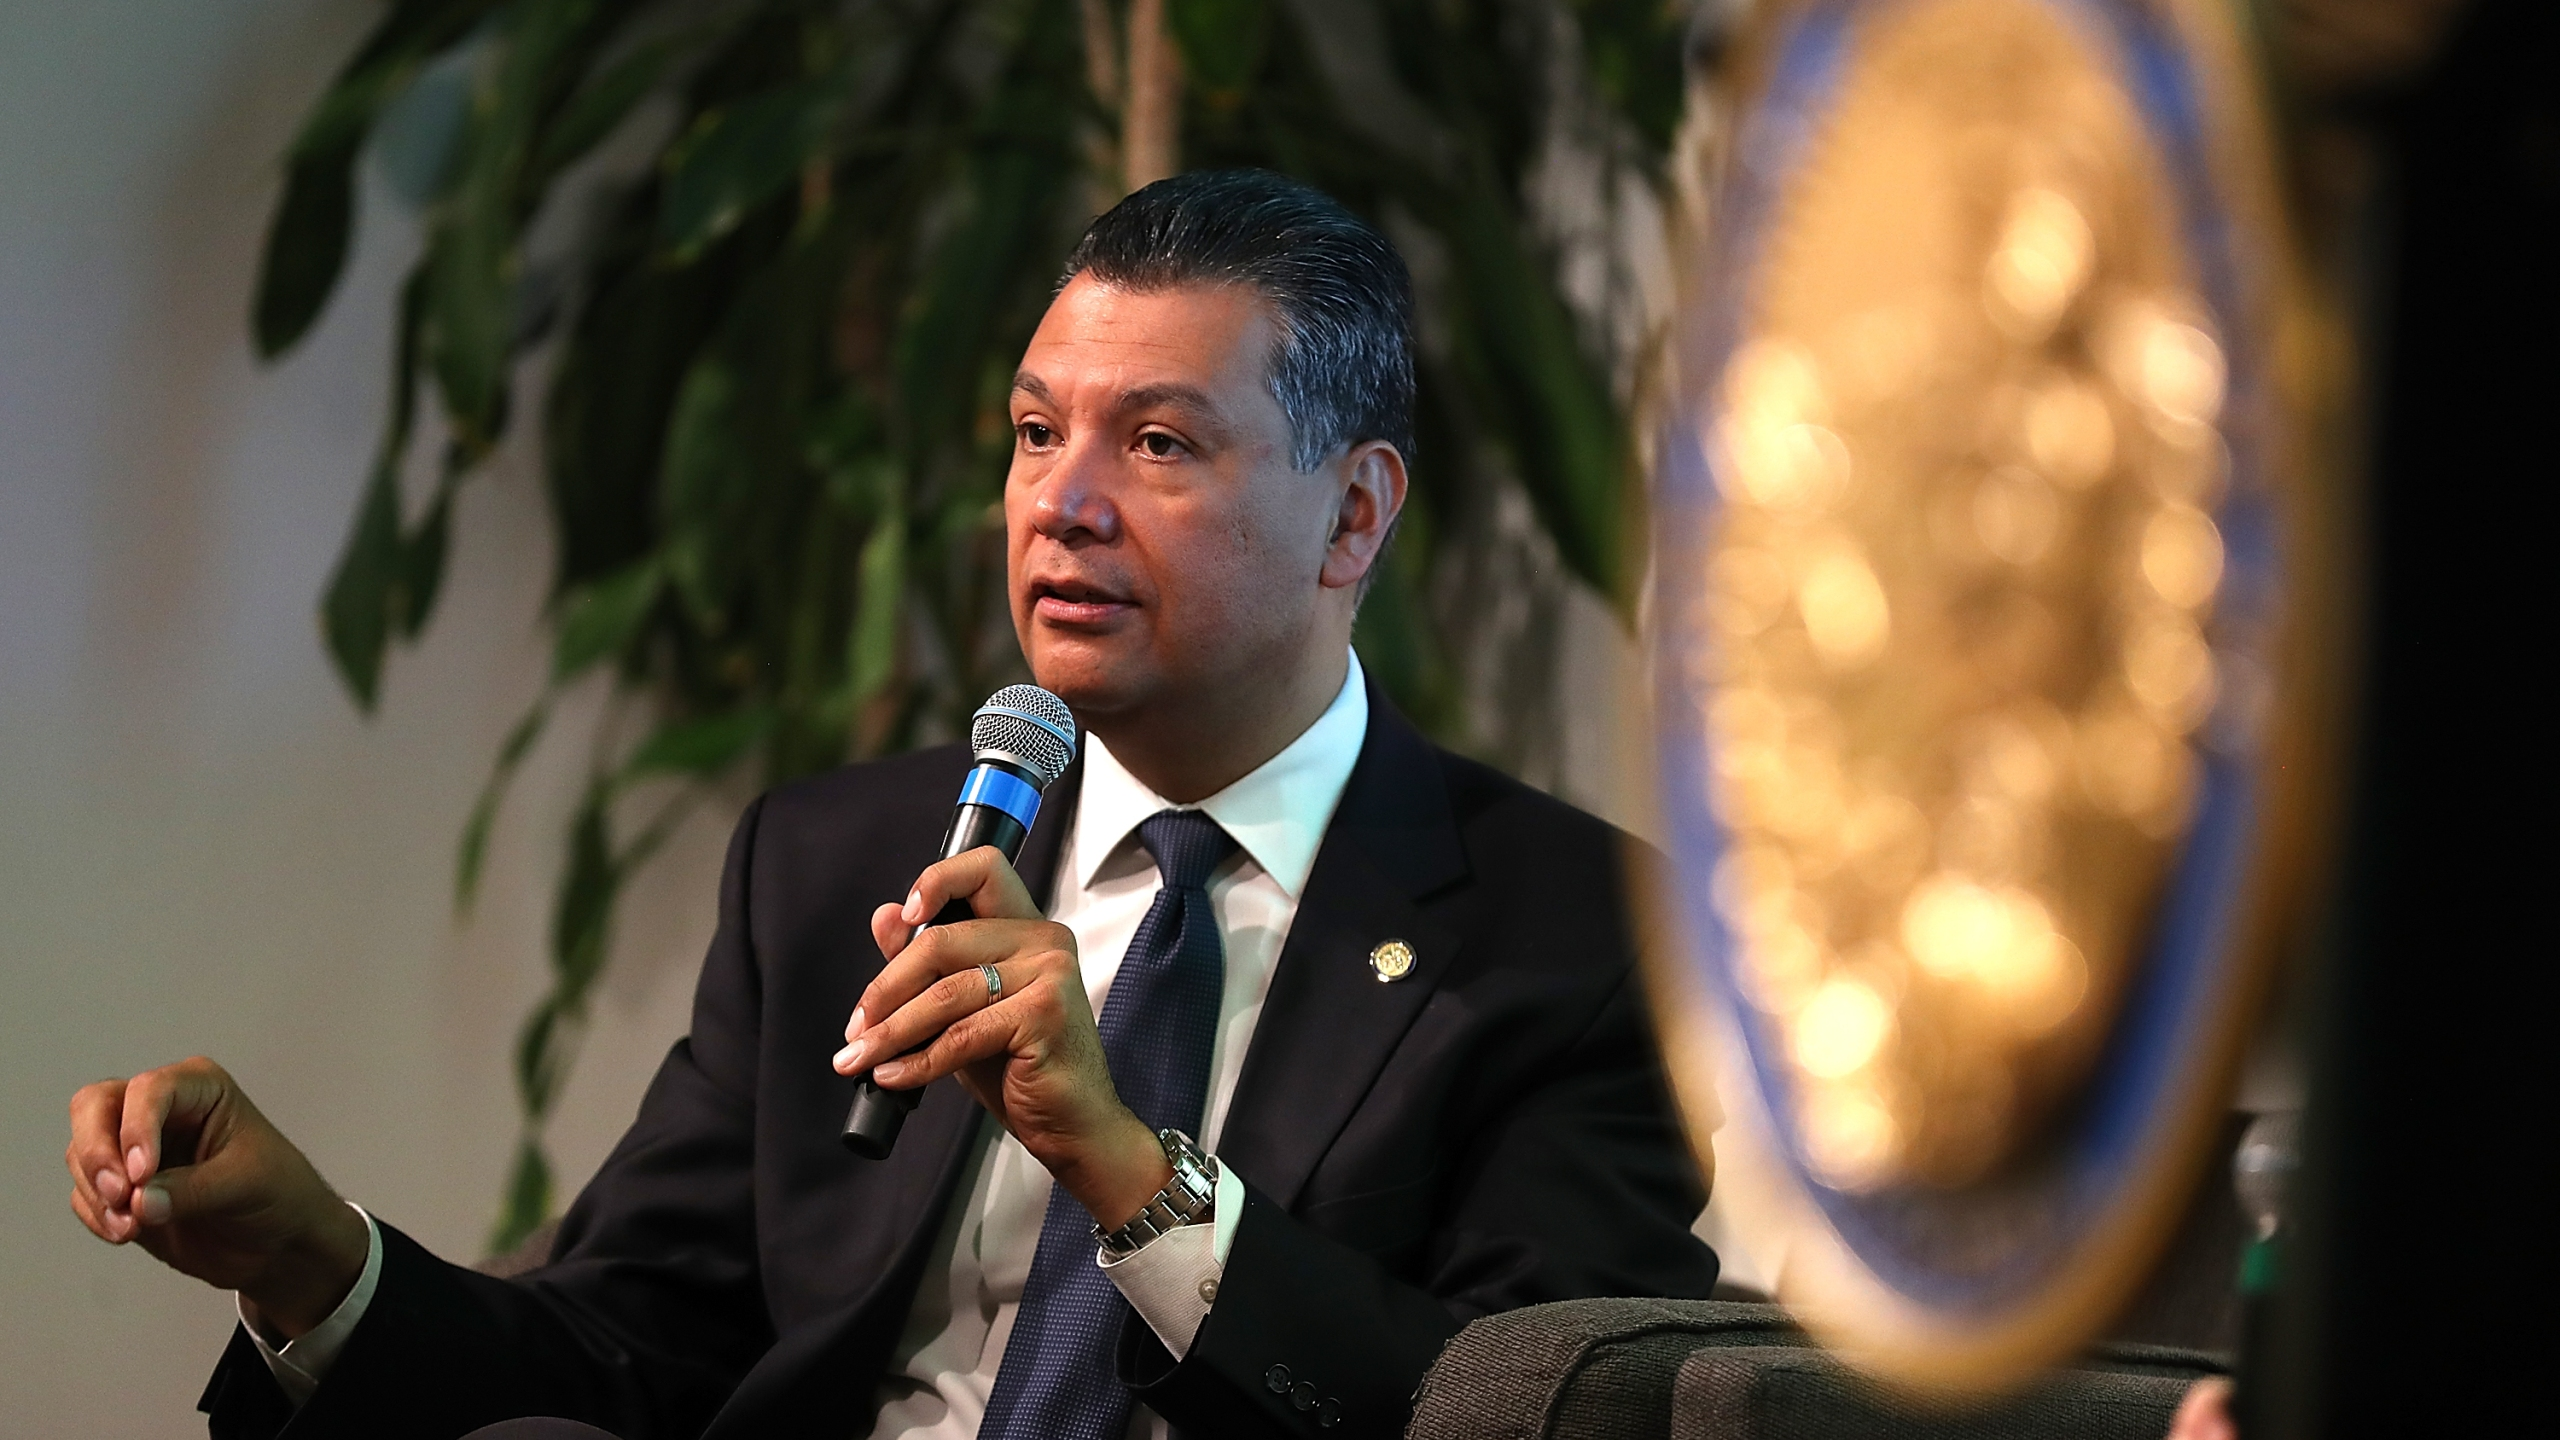 California Secretary of State Alex Padilla speaks during a news conference at Uber headquarters in San Francisco on May 24, 2018. (Credit: Justin Sullivan / Getty Images)